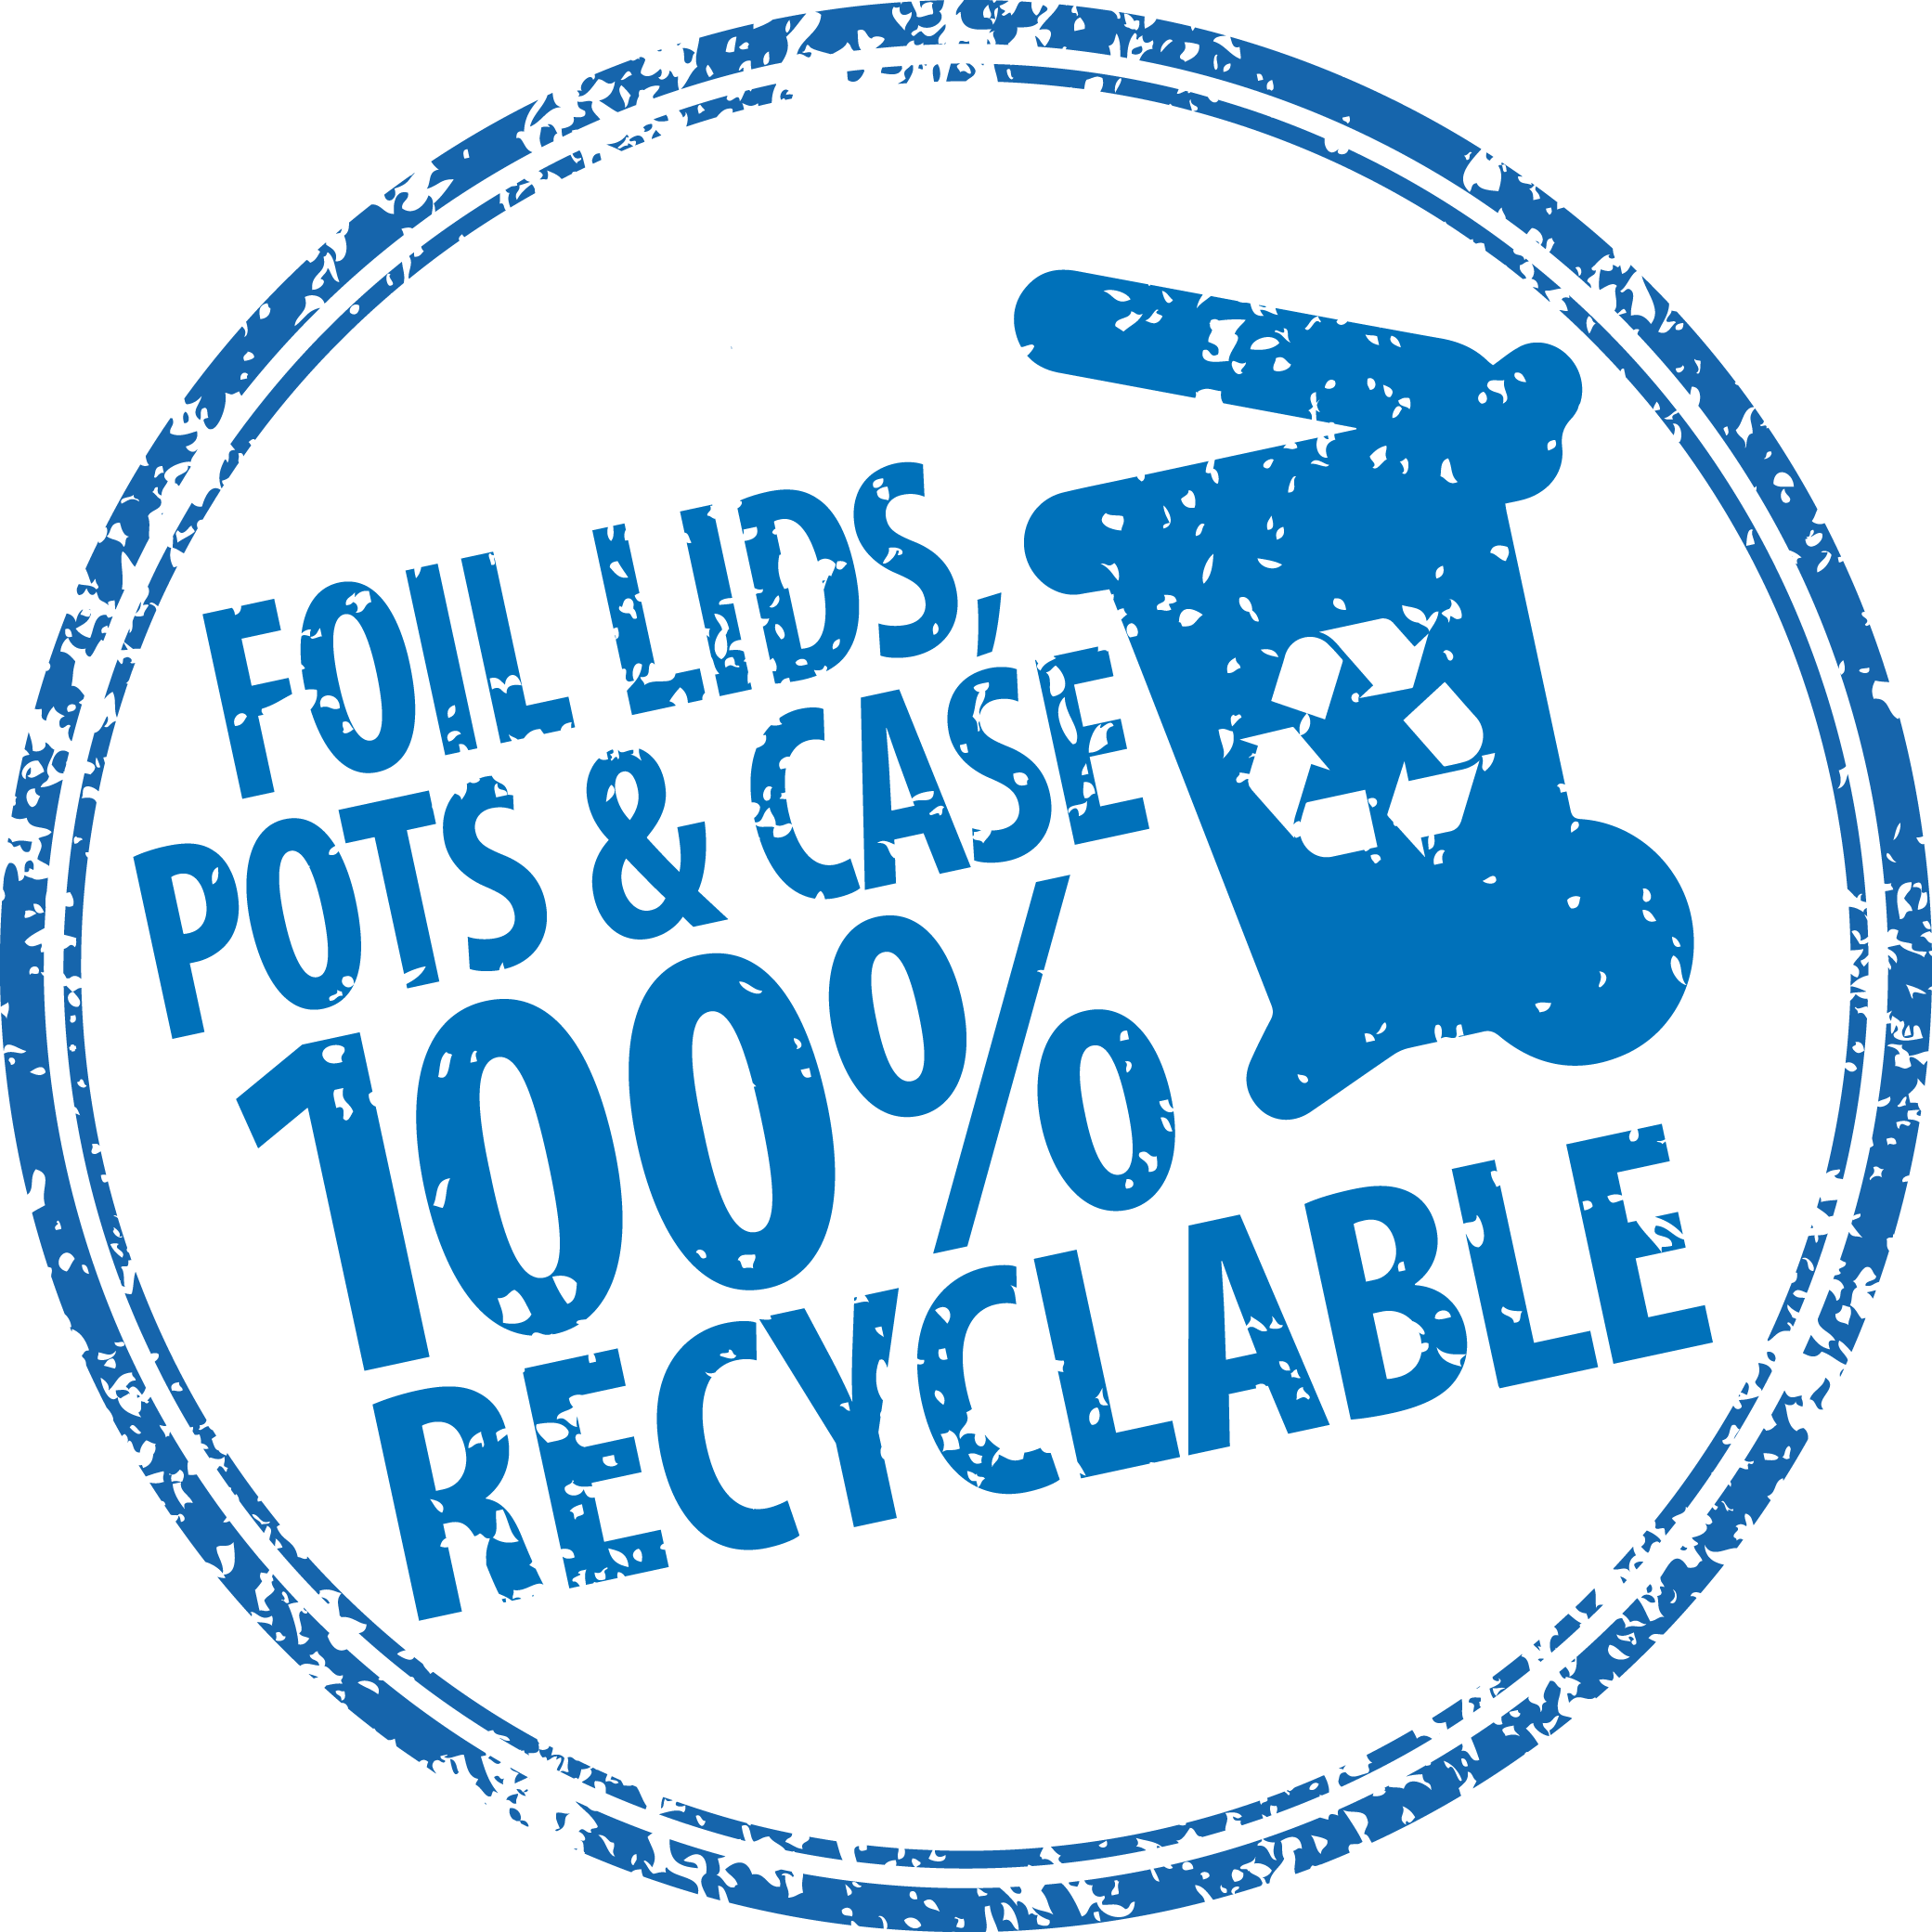 foil, lid, pots & case 100% recyclable